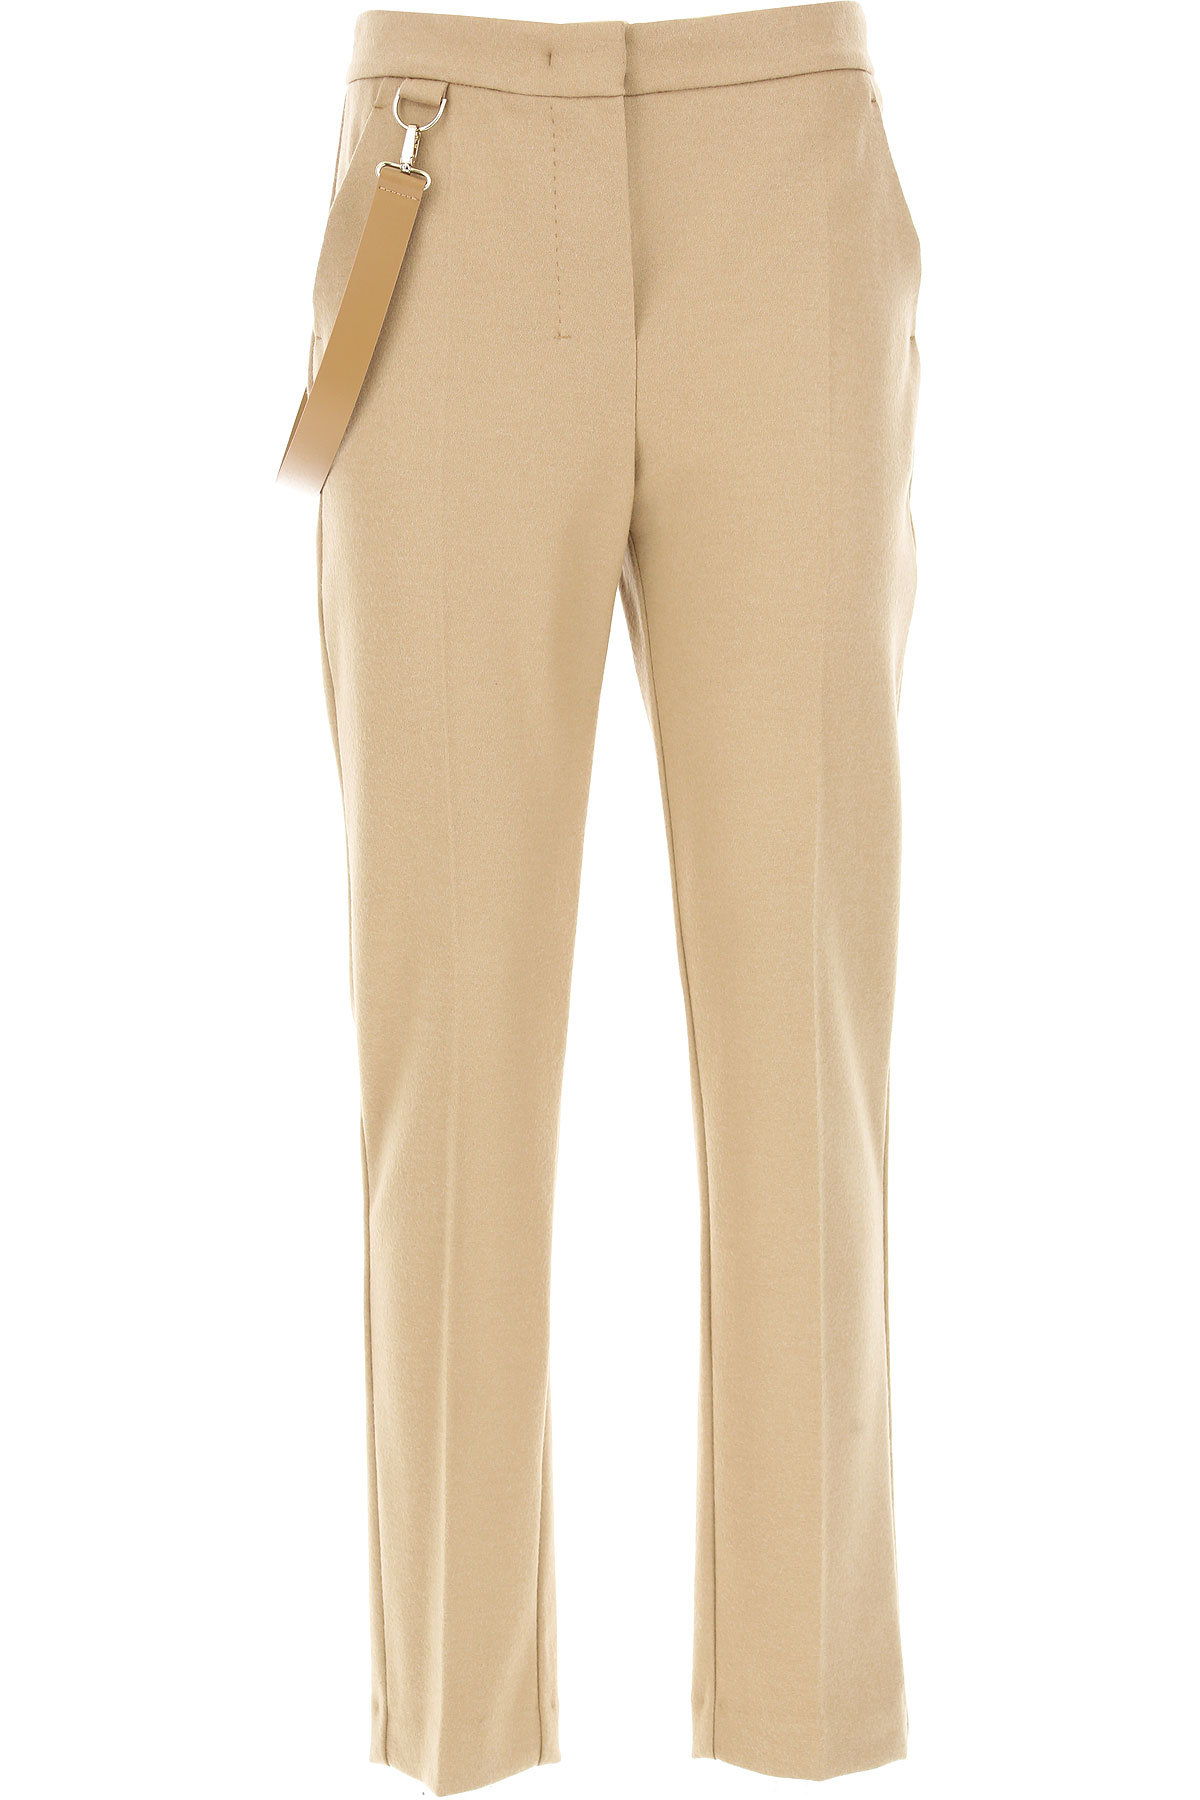 Image of Weekend by Max Mara Pants for Women, Camel, Virgin wool, 2017, 26 30